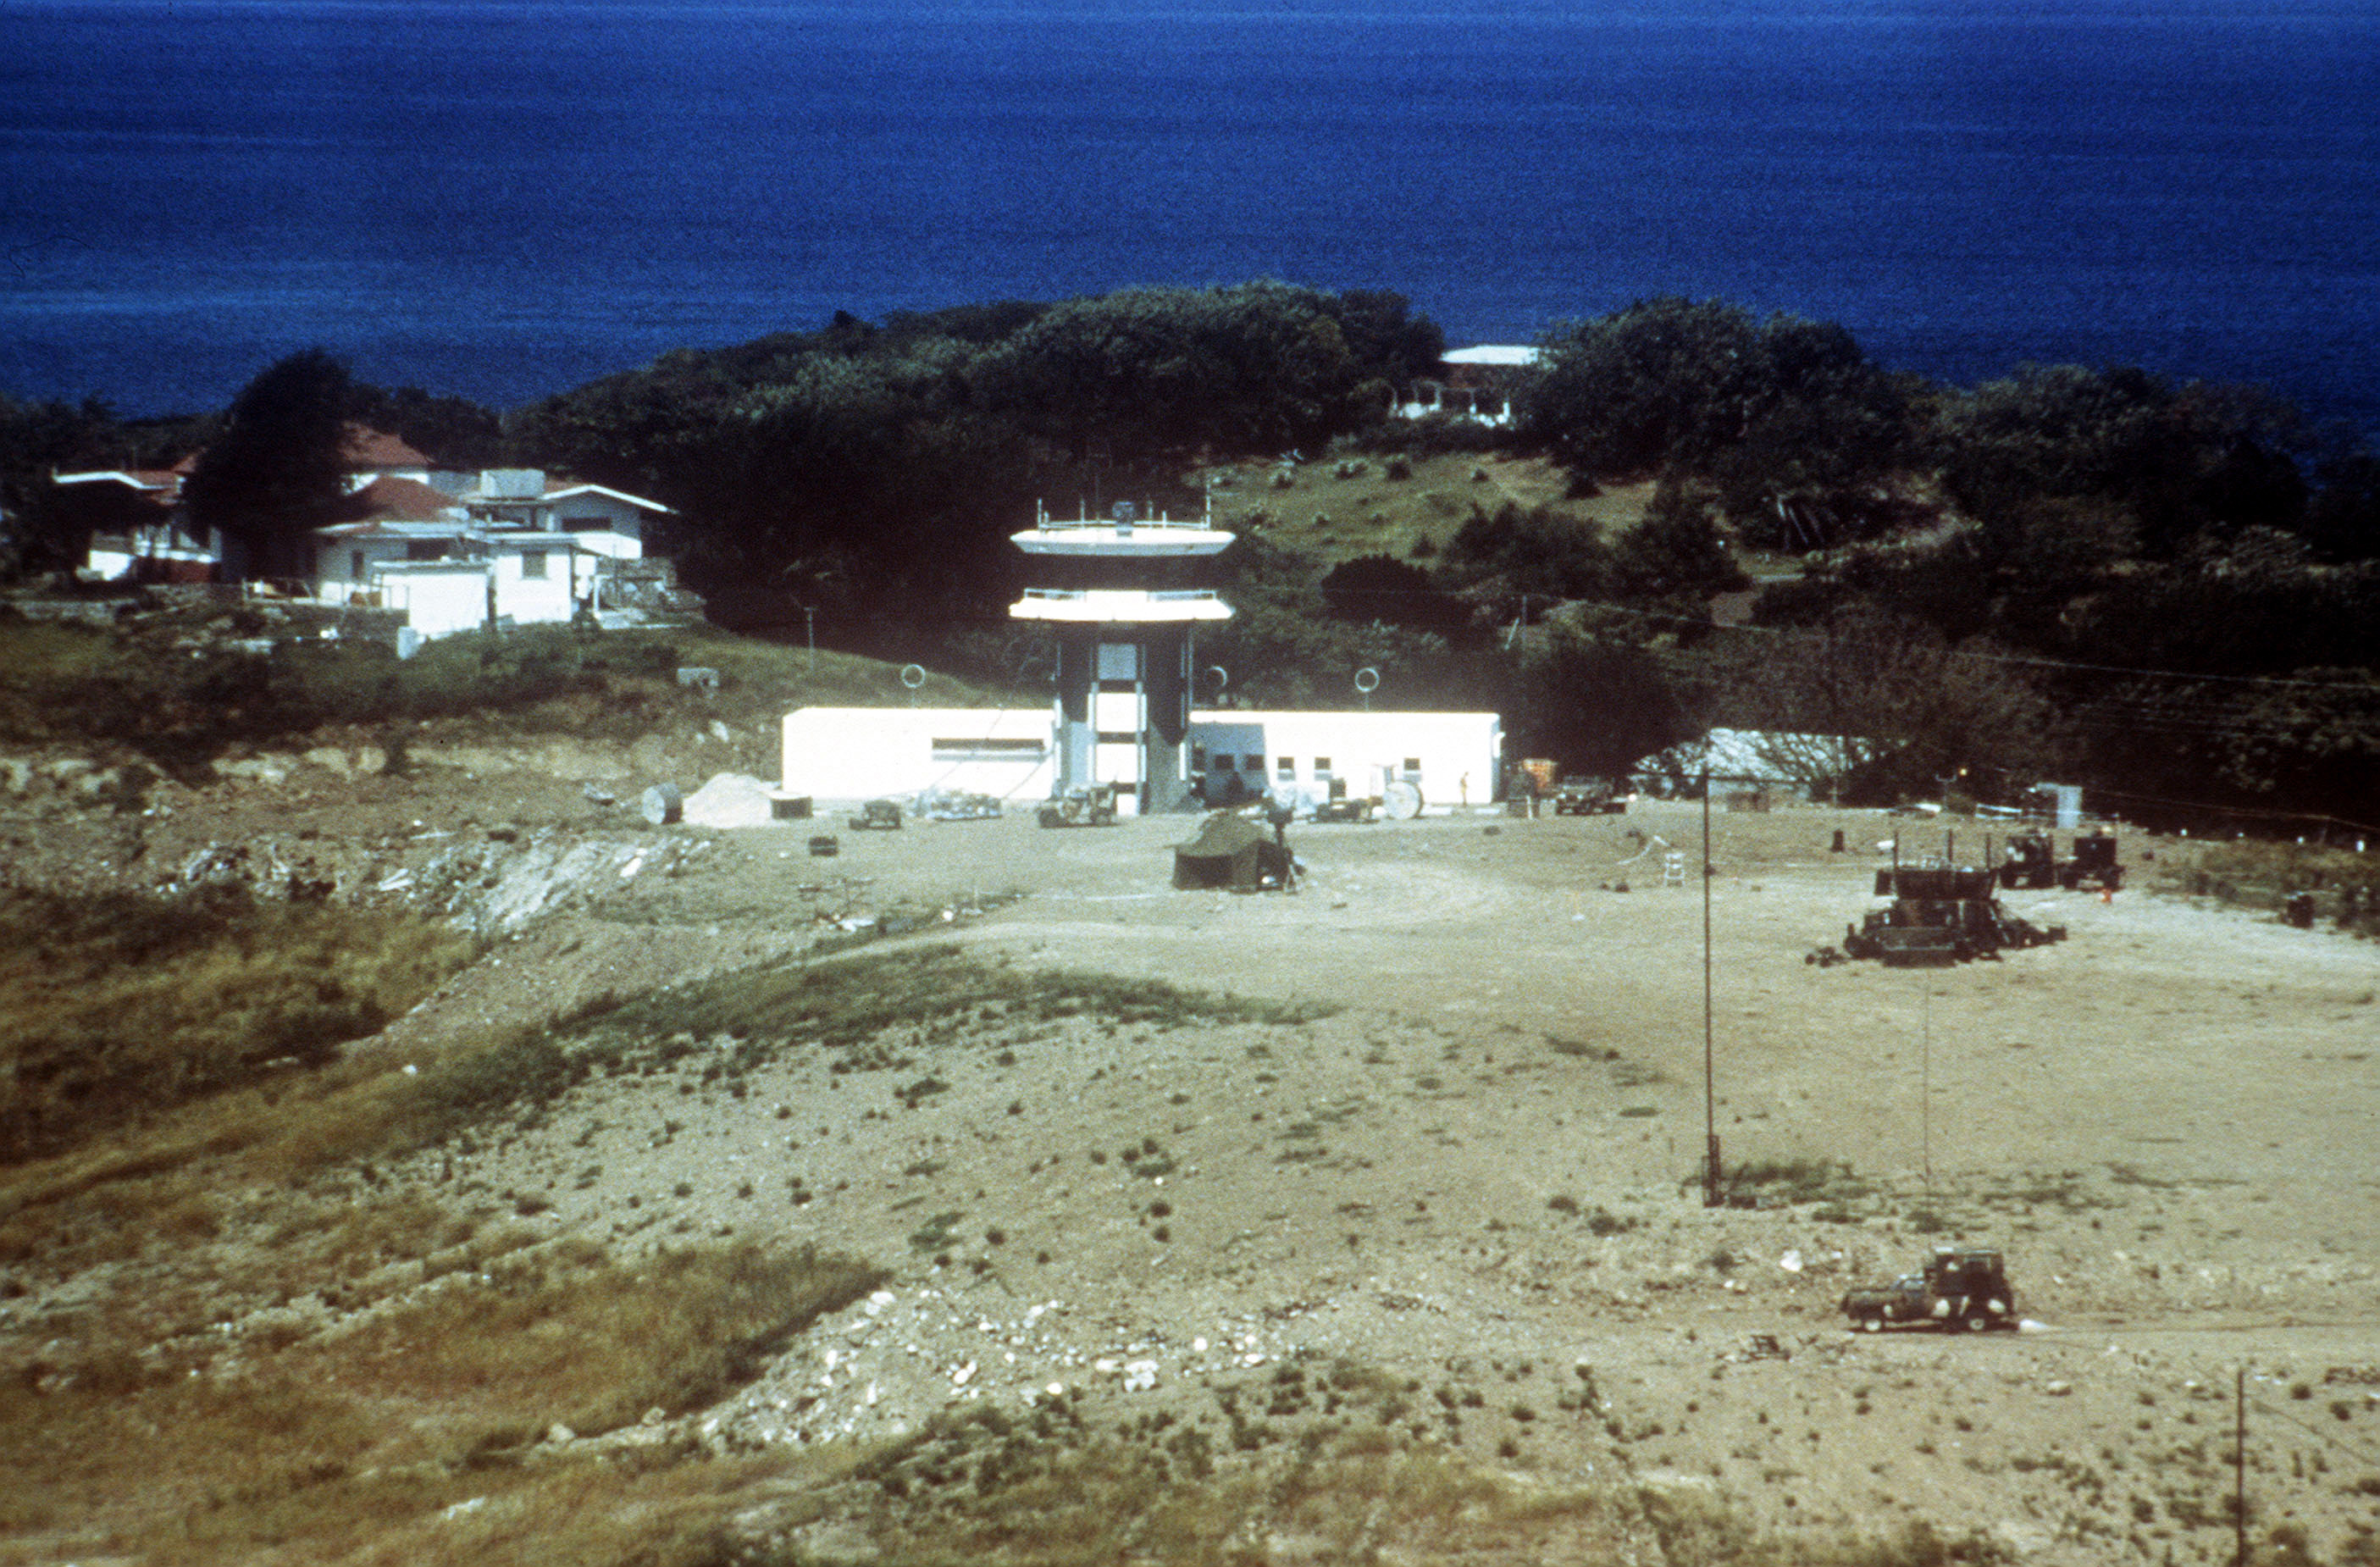 An aerial view of the control tower at Point Salines Airport taken during Operation URGENT FURY